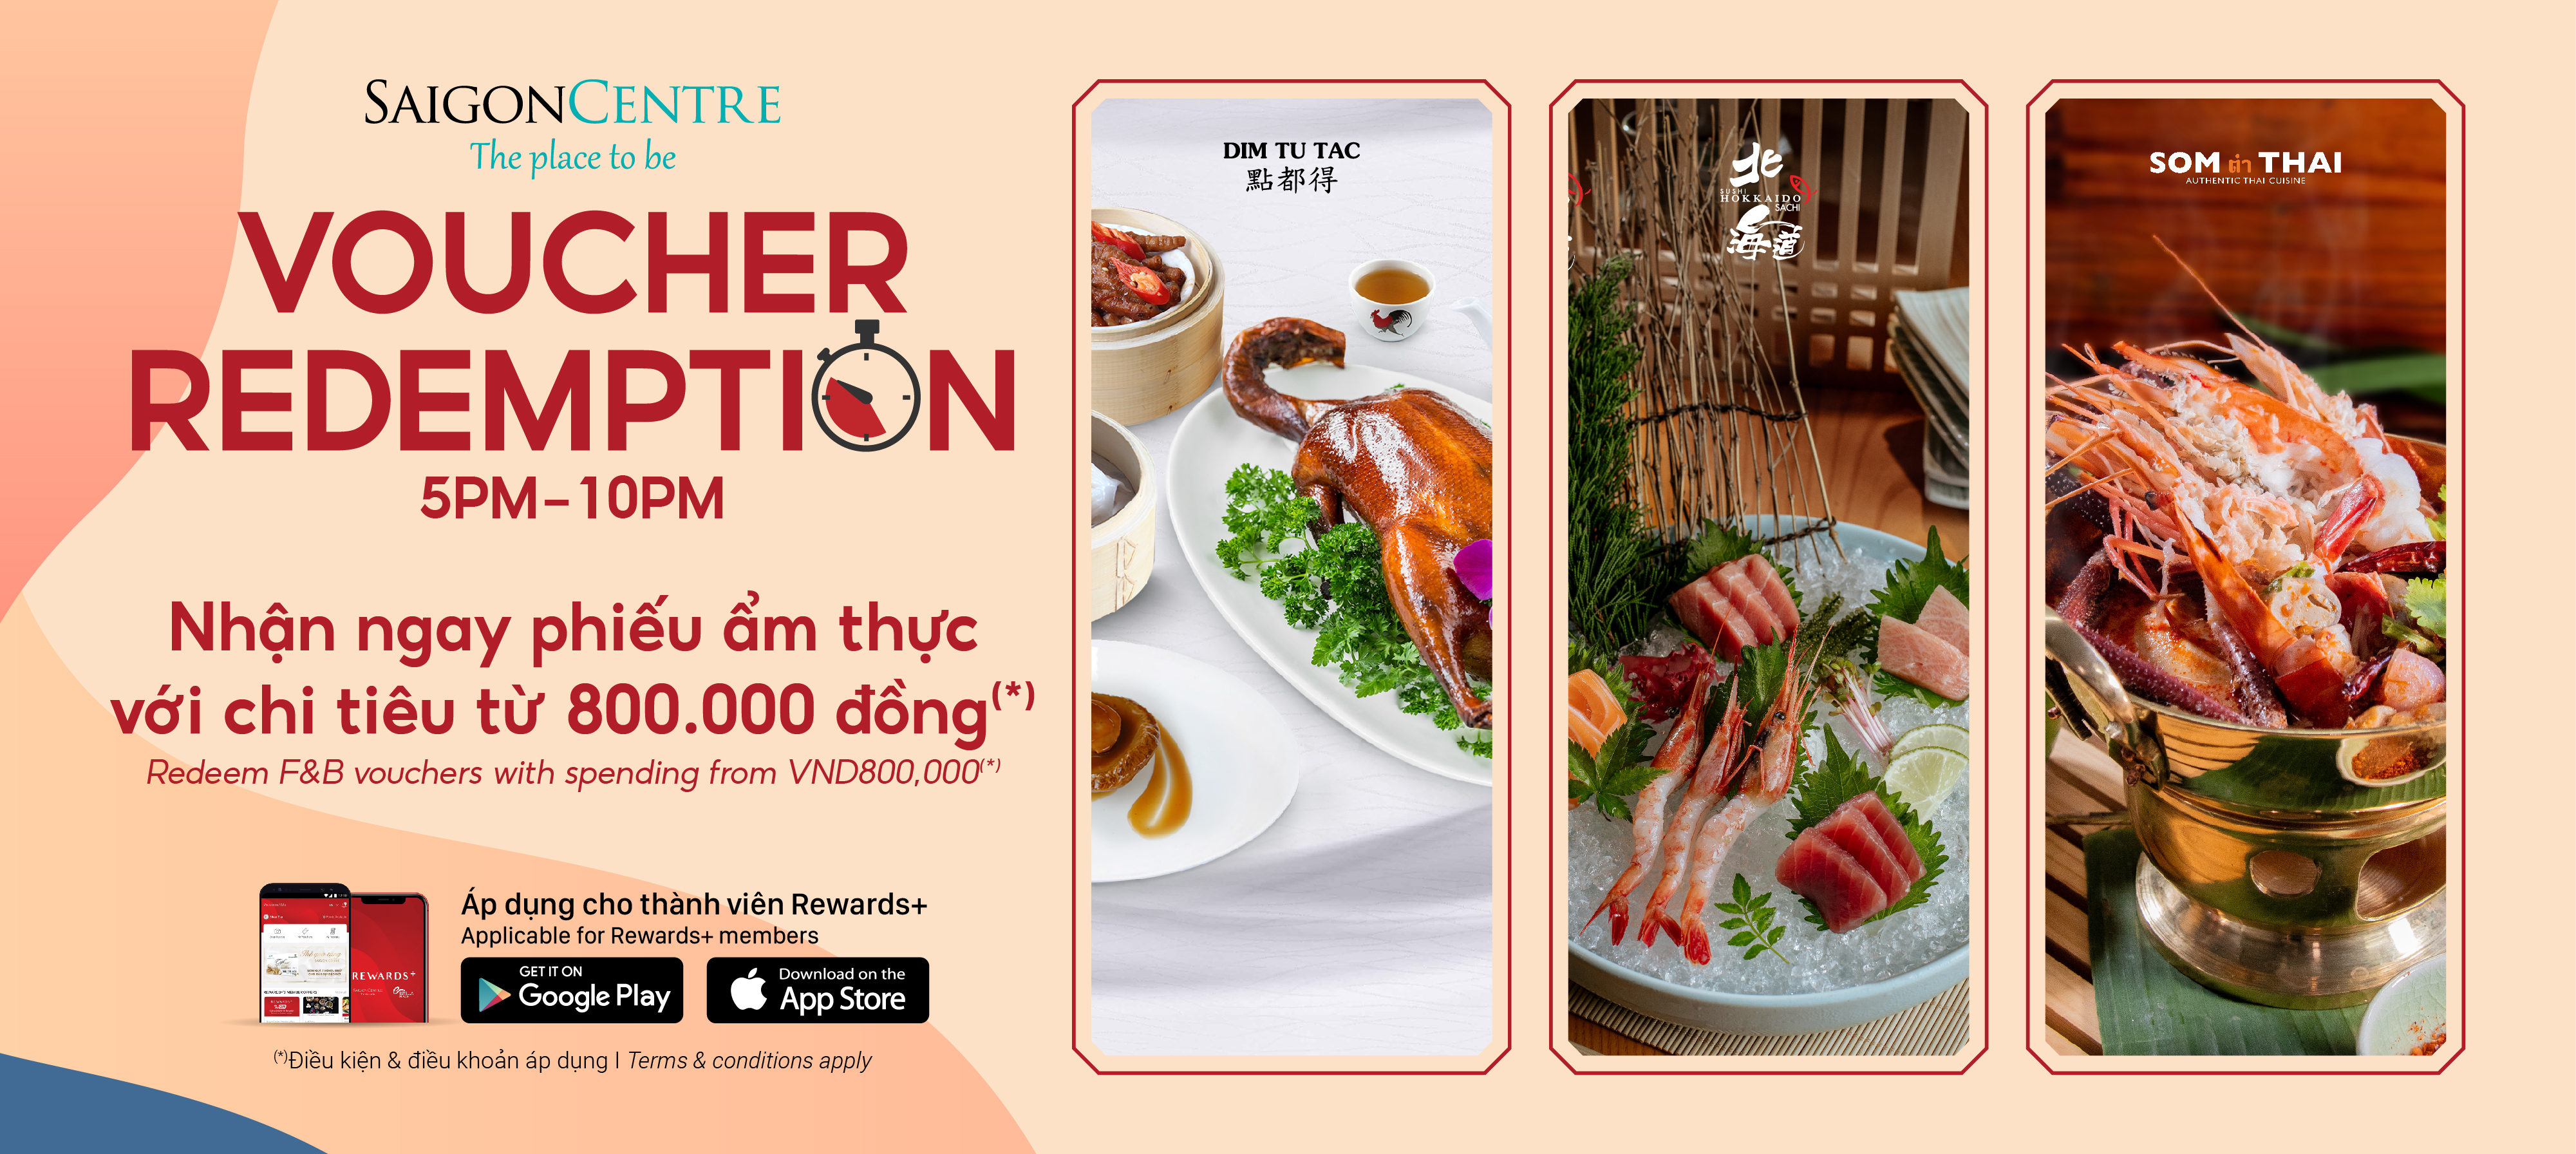 RECEIVE F&B VOUCHERS WITH SPENDING FROM VND800K FROM 17:00 - 22:00 (*)